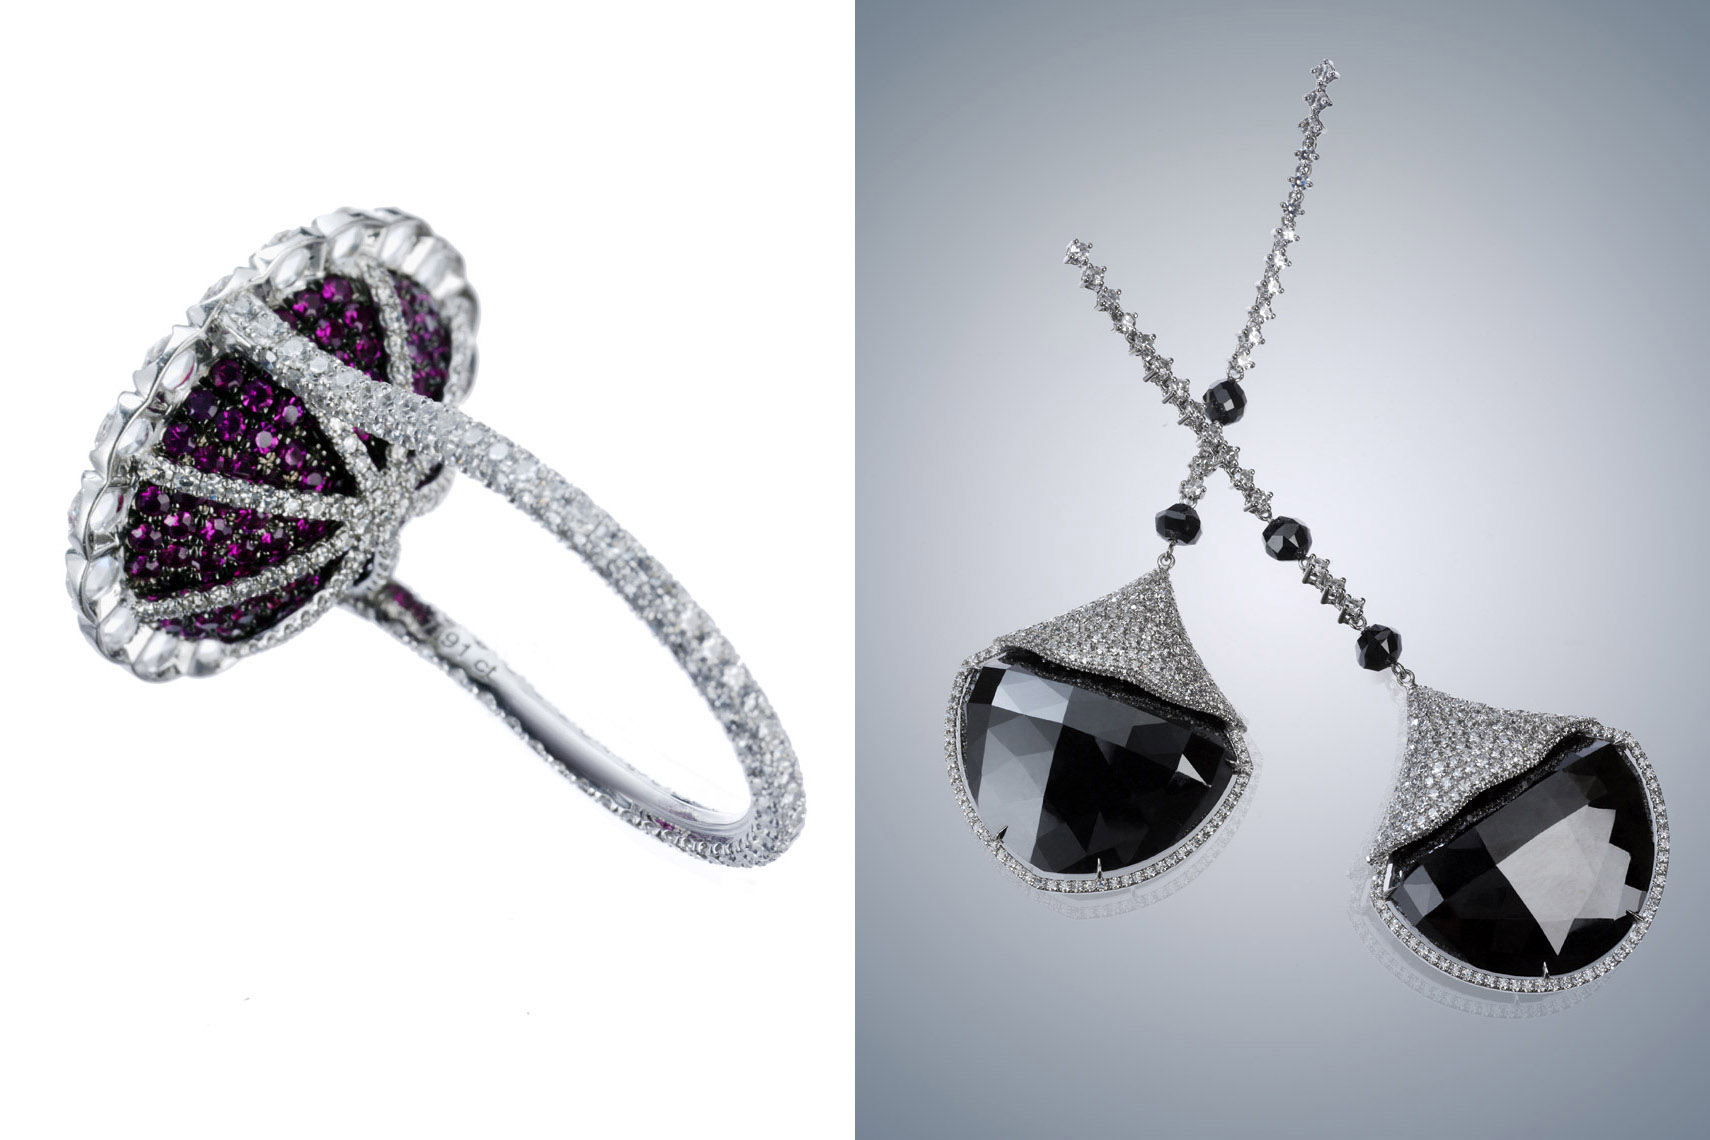 Jewelry Still Life, Black Diamond Earrings and Diamond Ring